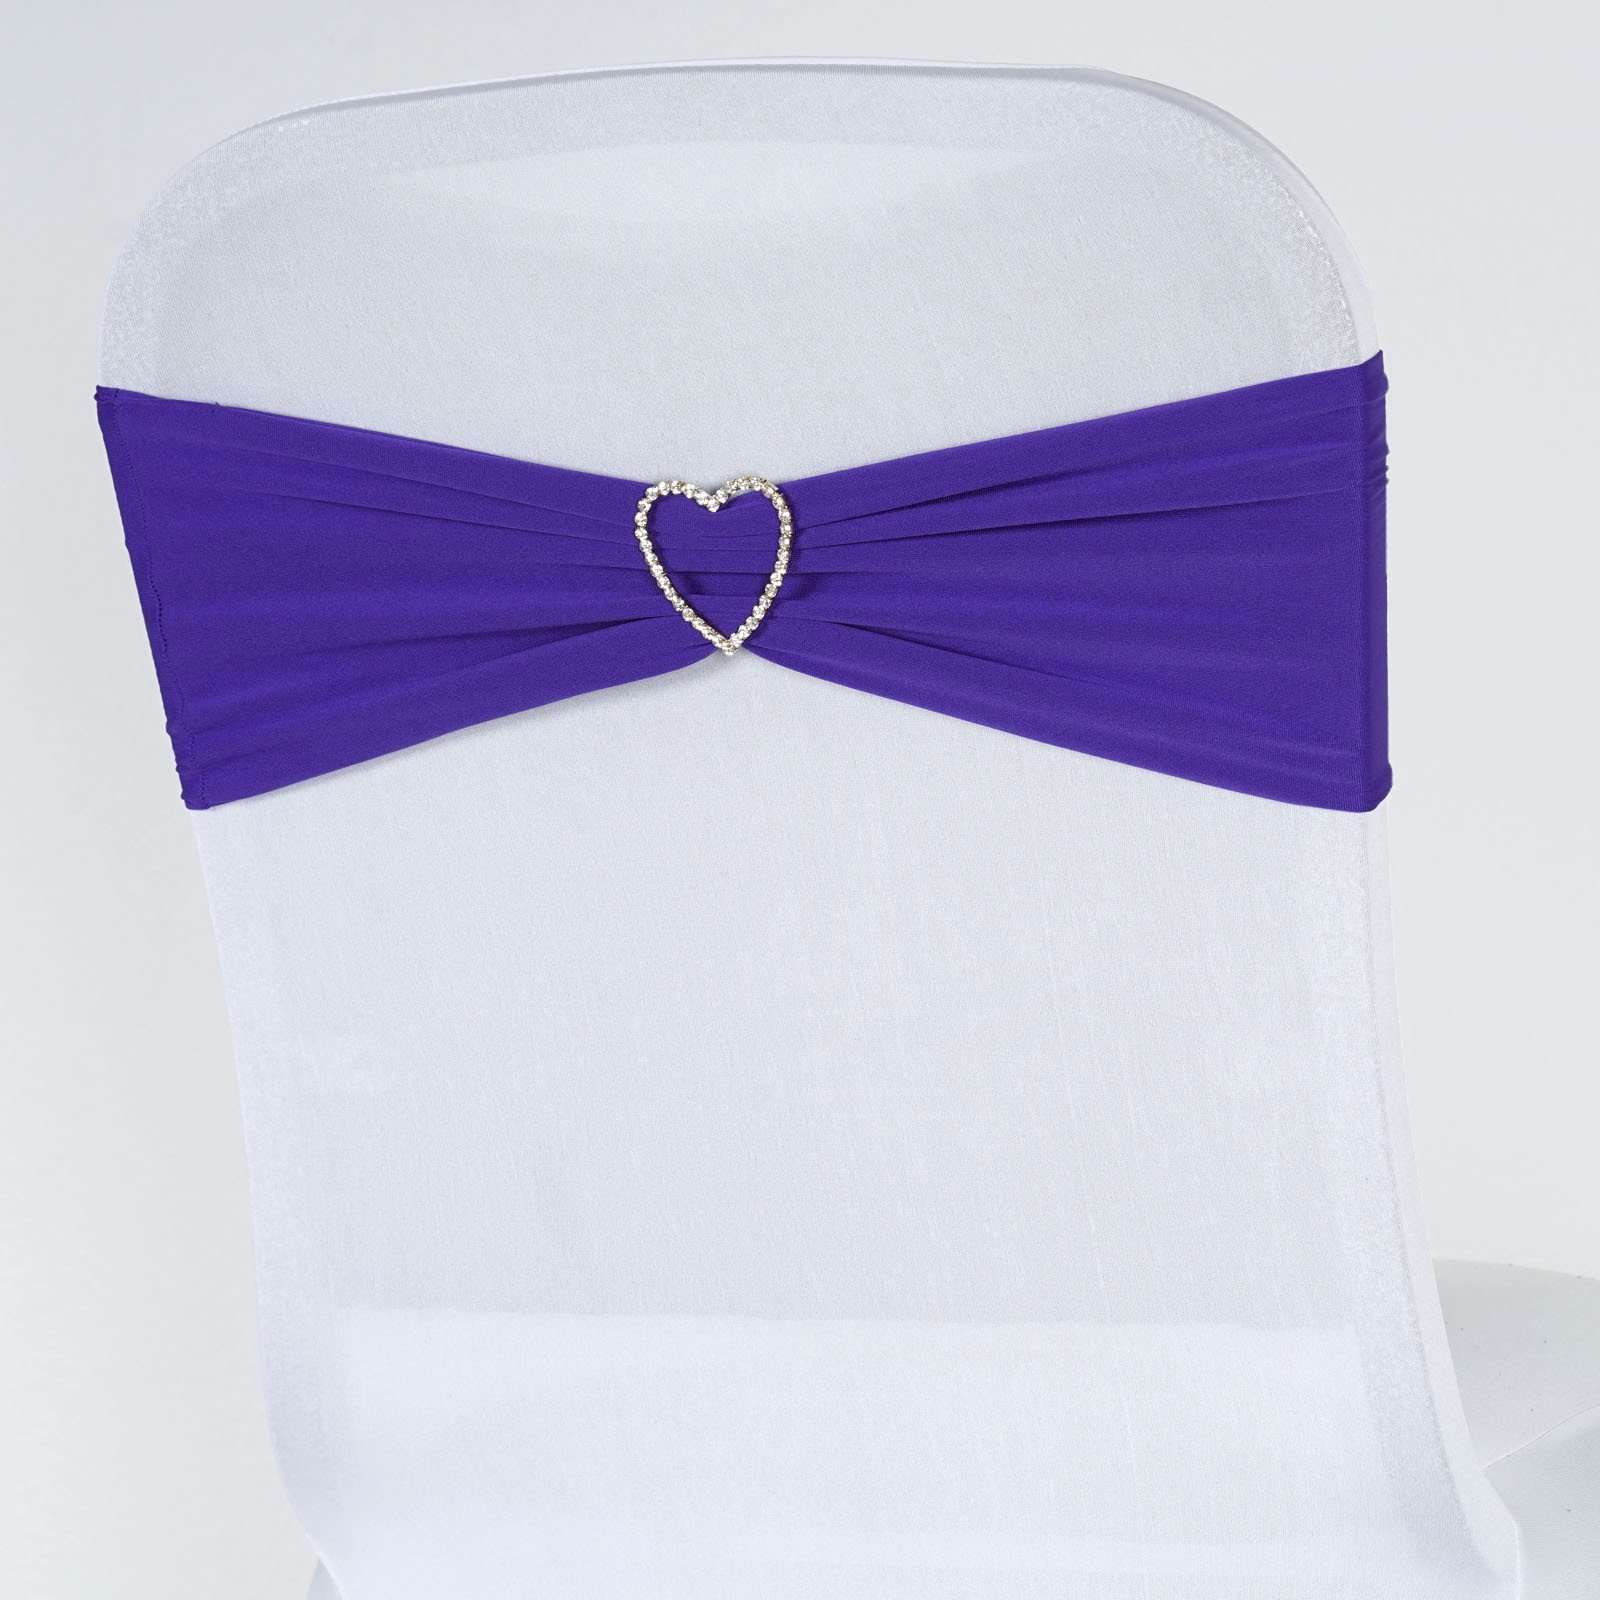 purple chair sashes for weddings potty chairs adults 5 pcs wholesale spandex stretch sash catering wedding 5pc x